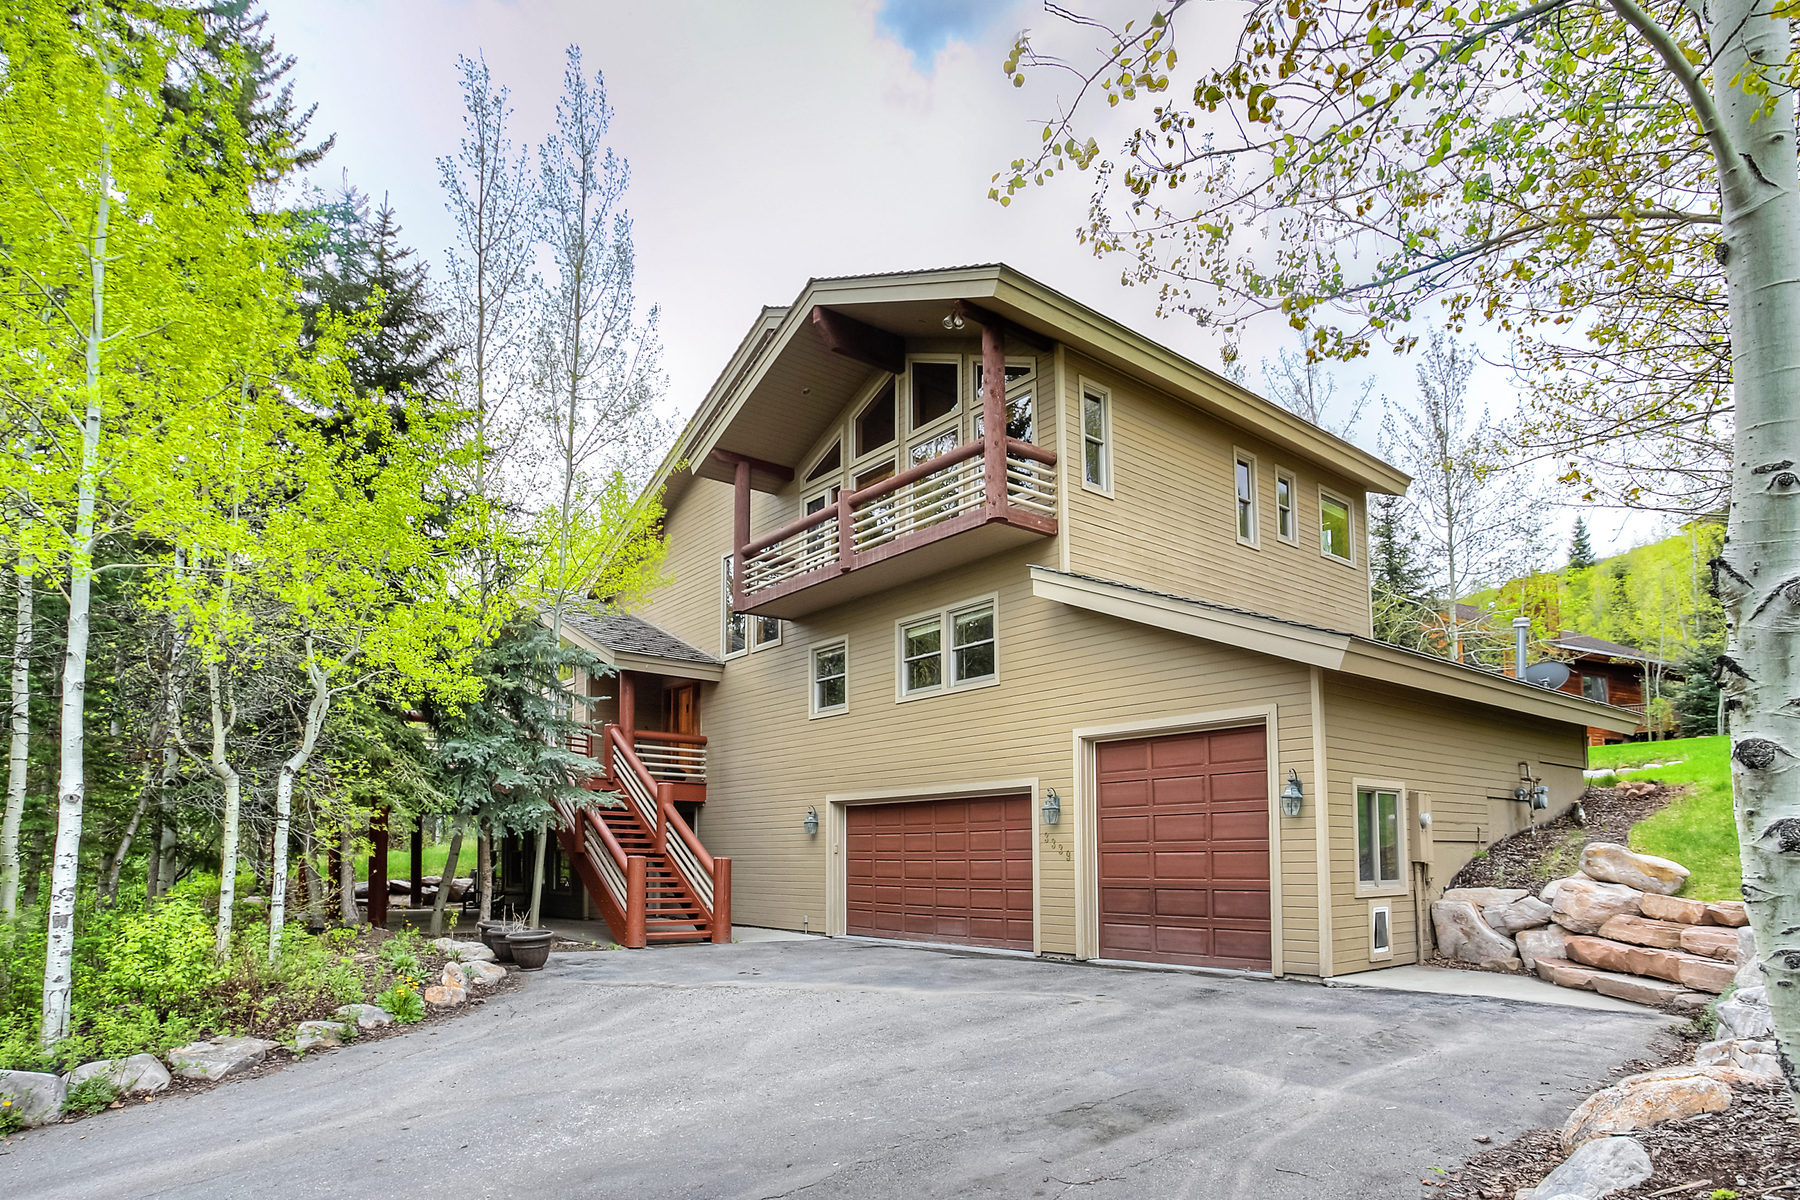 Single Family Home for Sale at Stunning Private retreat in Upper Pinebrook 3339 Big Spruce Way Park City, Utah 84098 United States